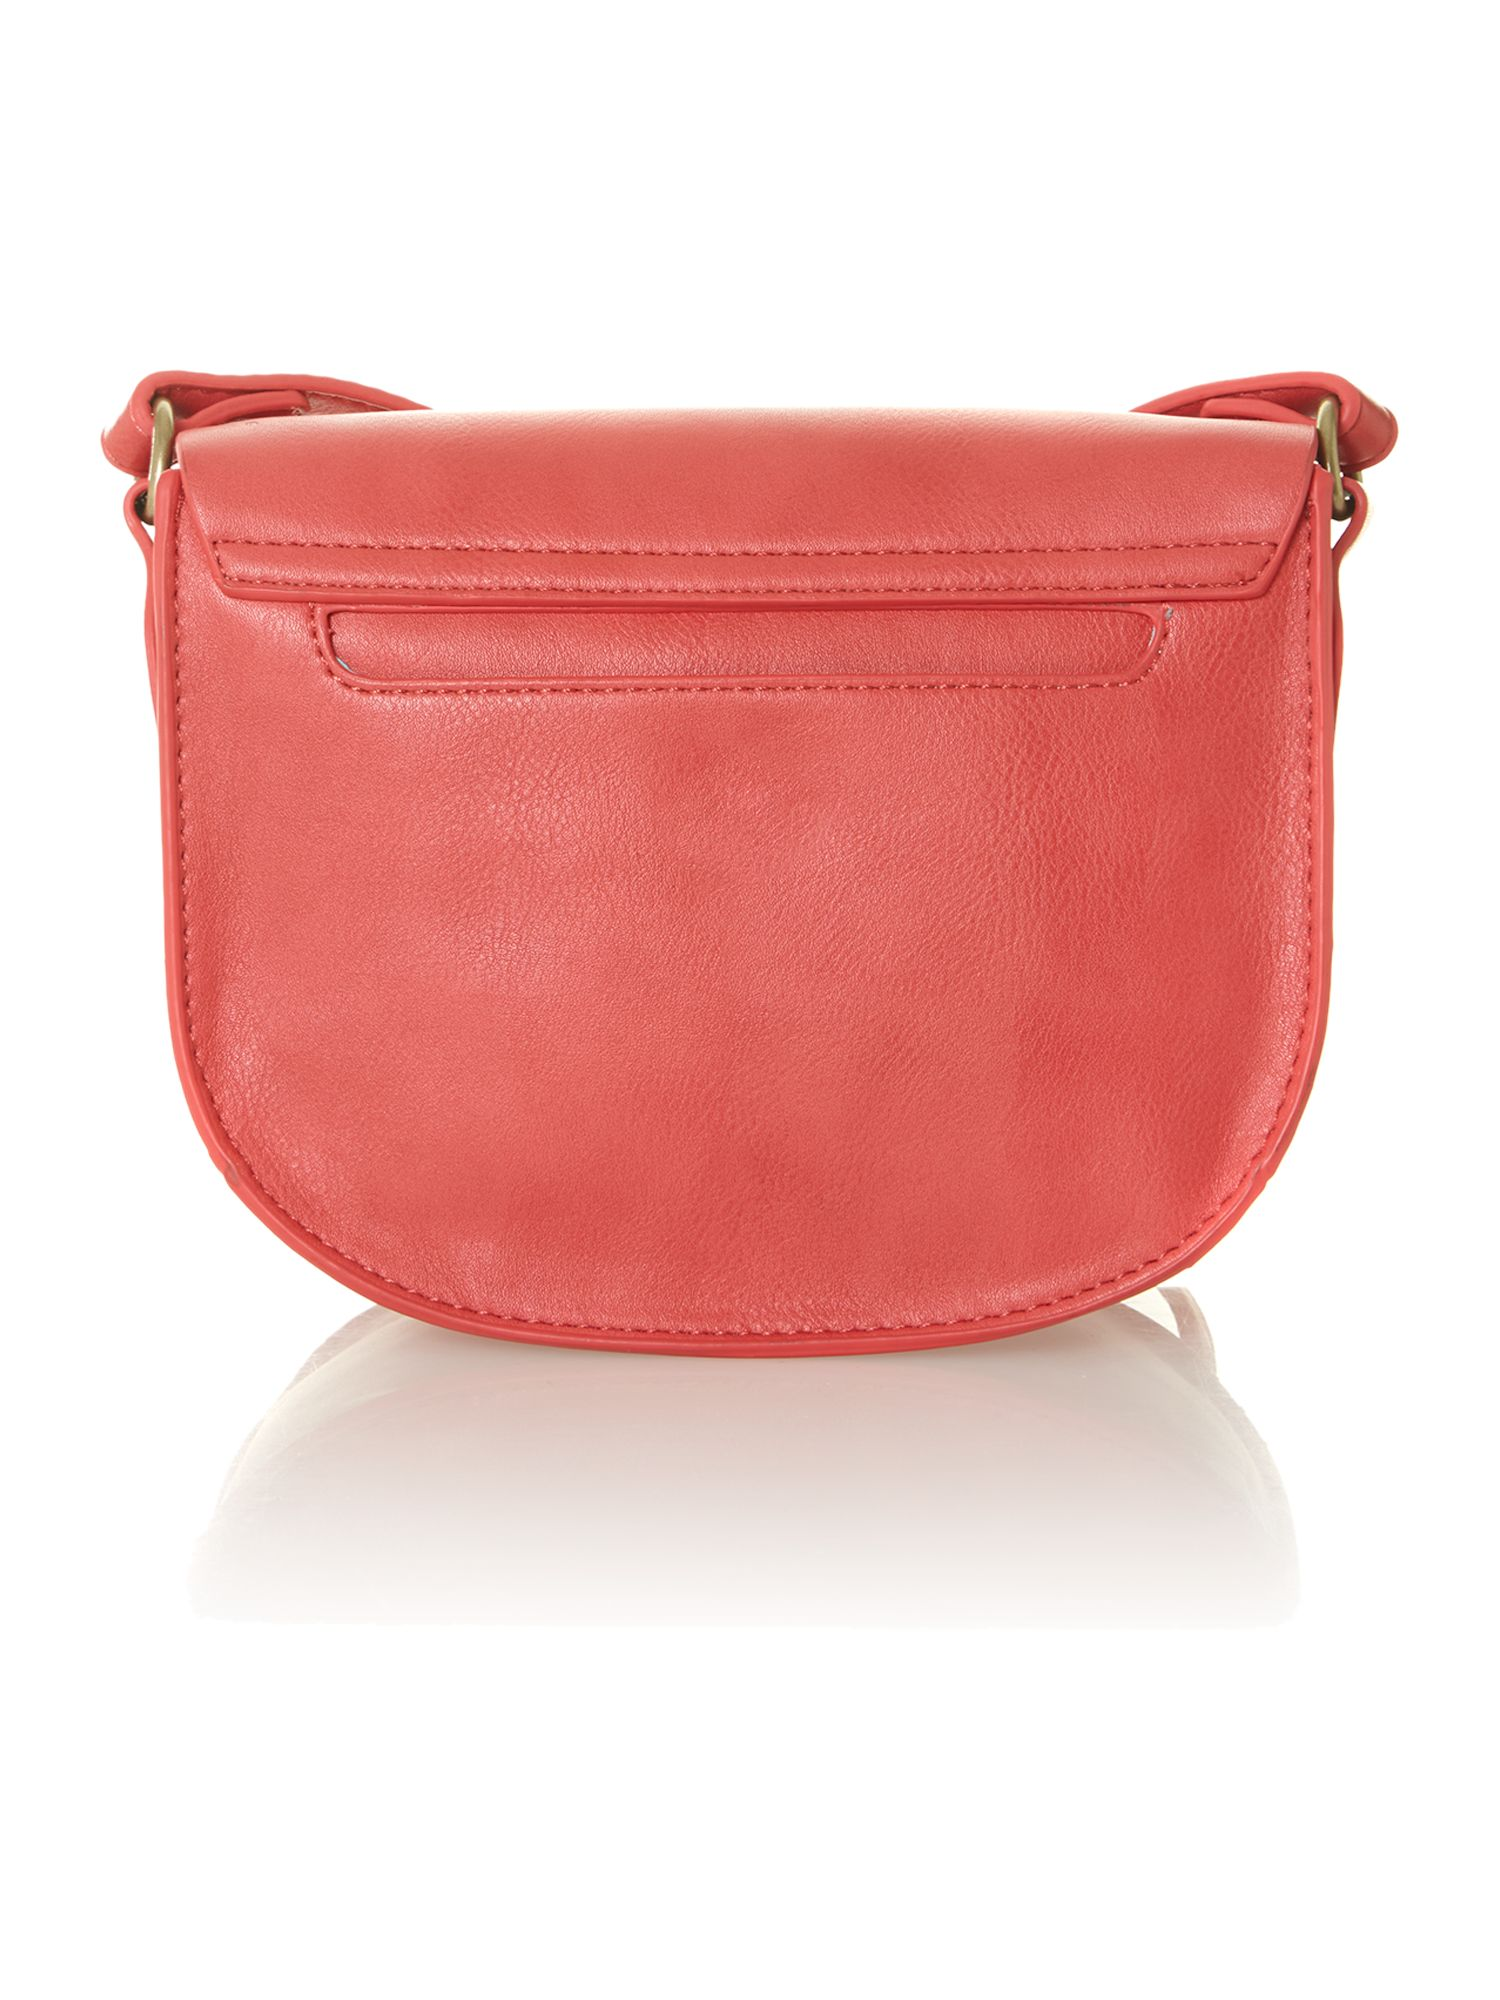 Keri small coral cross body bag